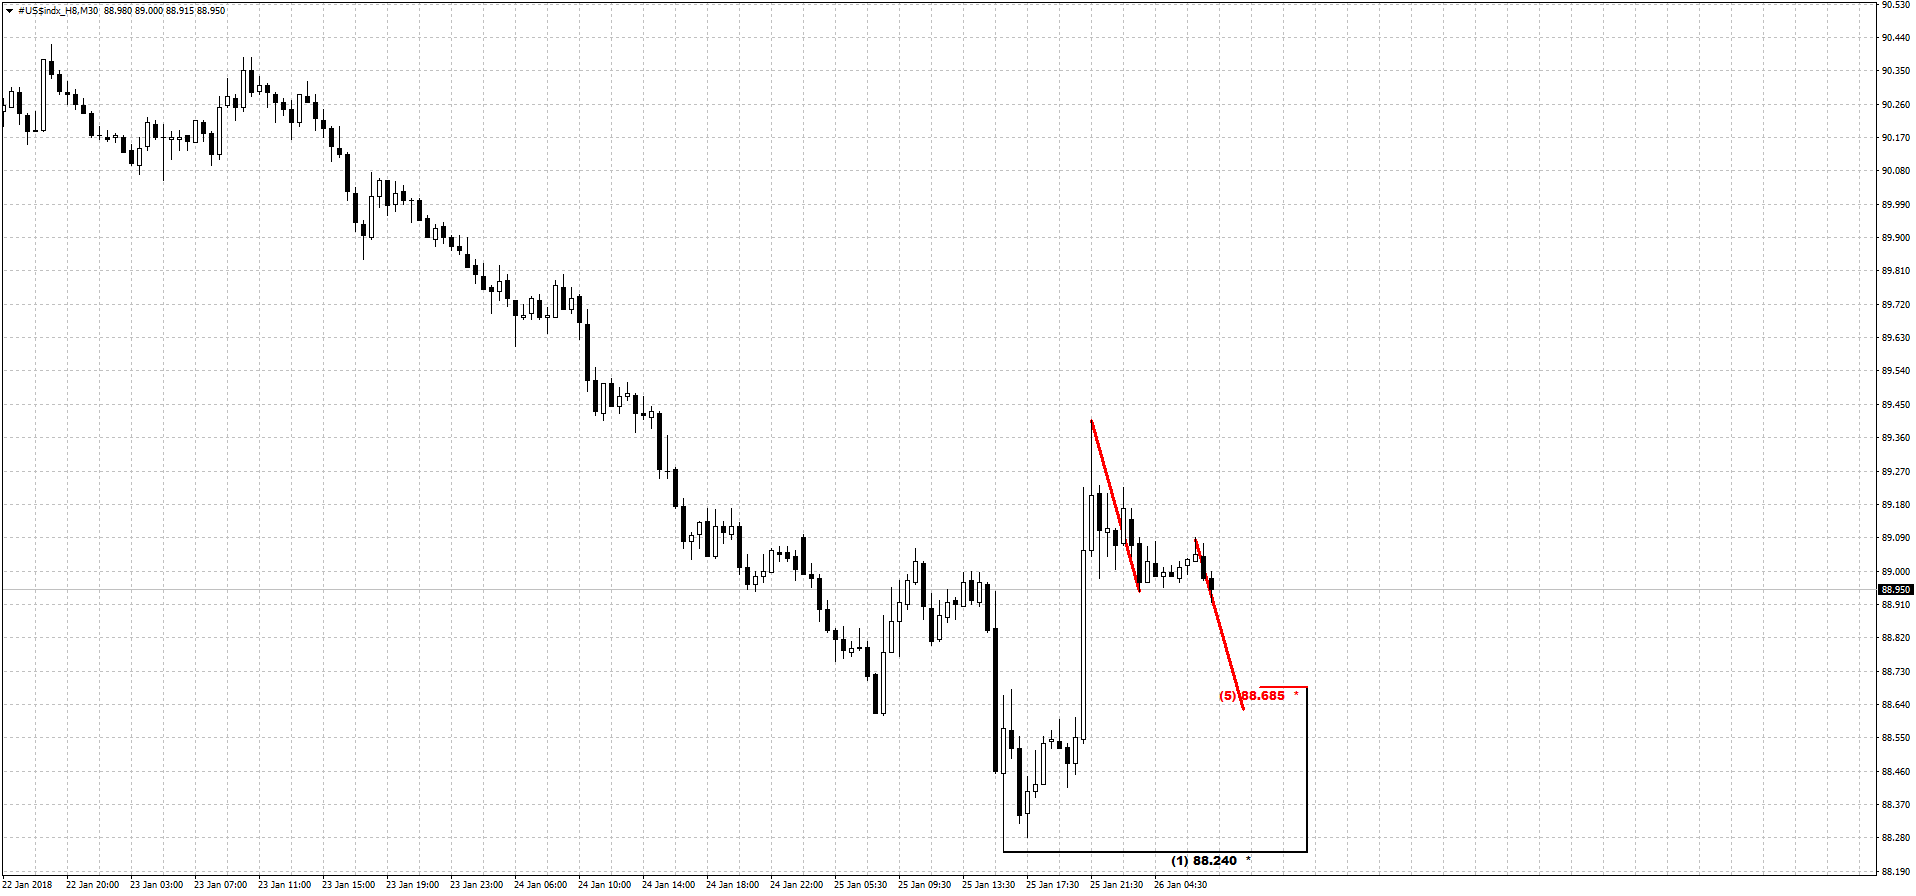 dxy_1h_26_01_18.